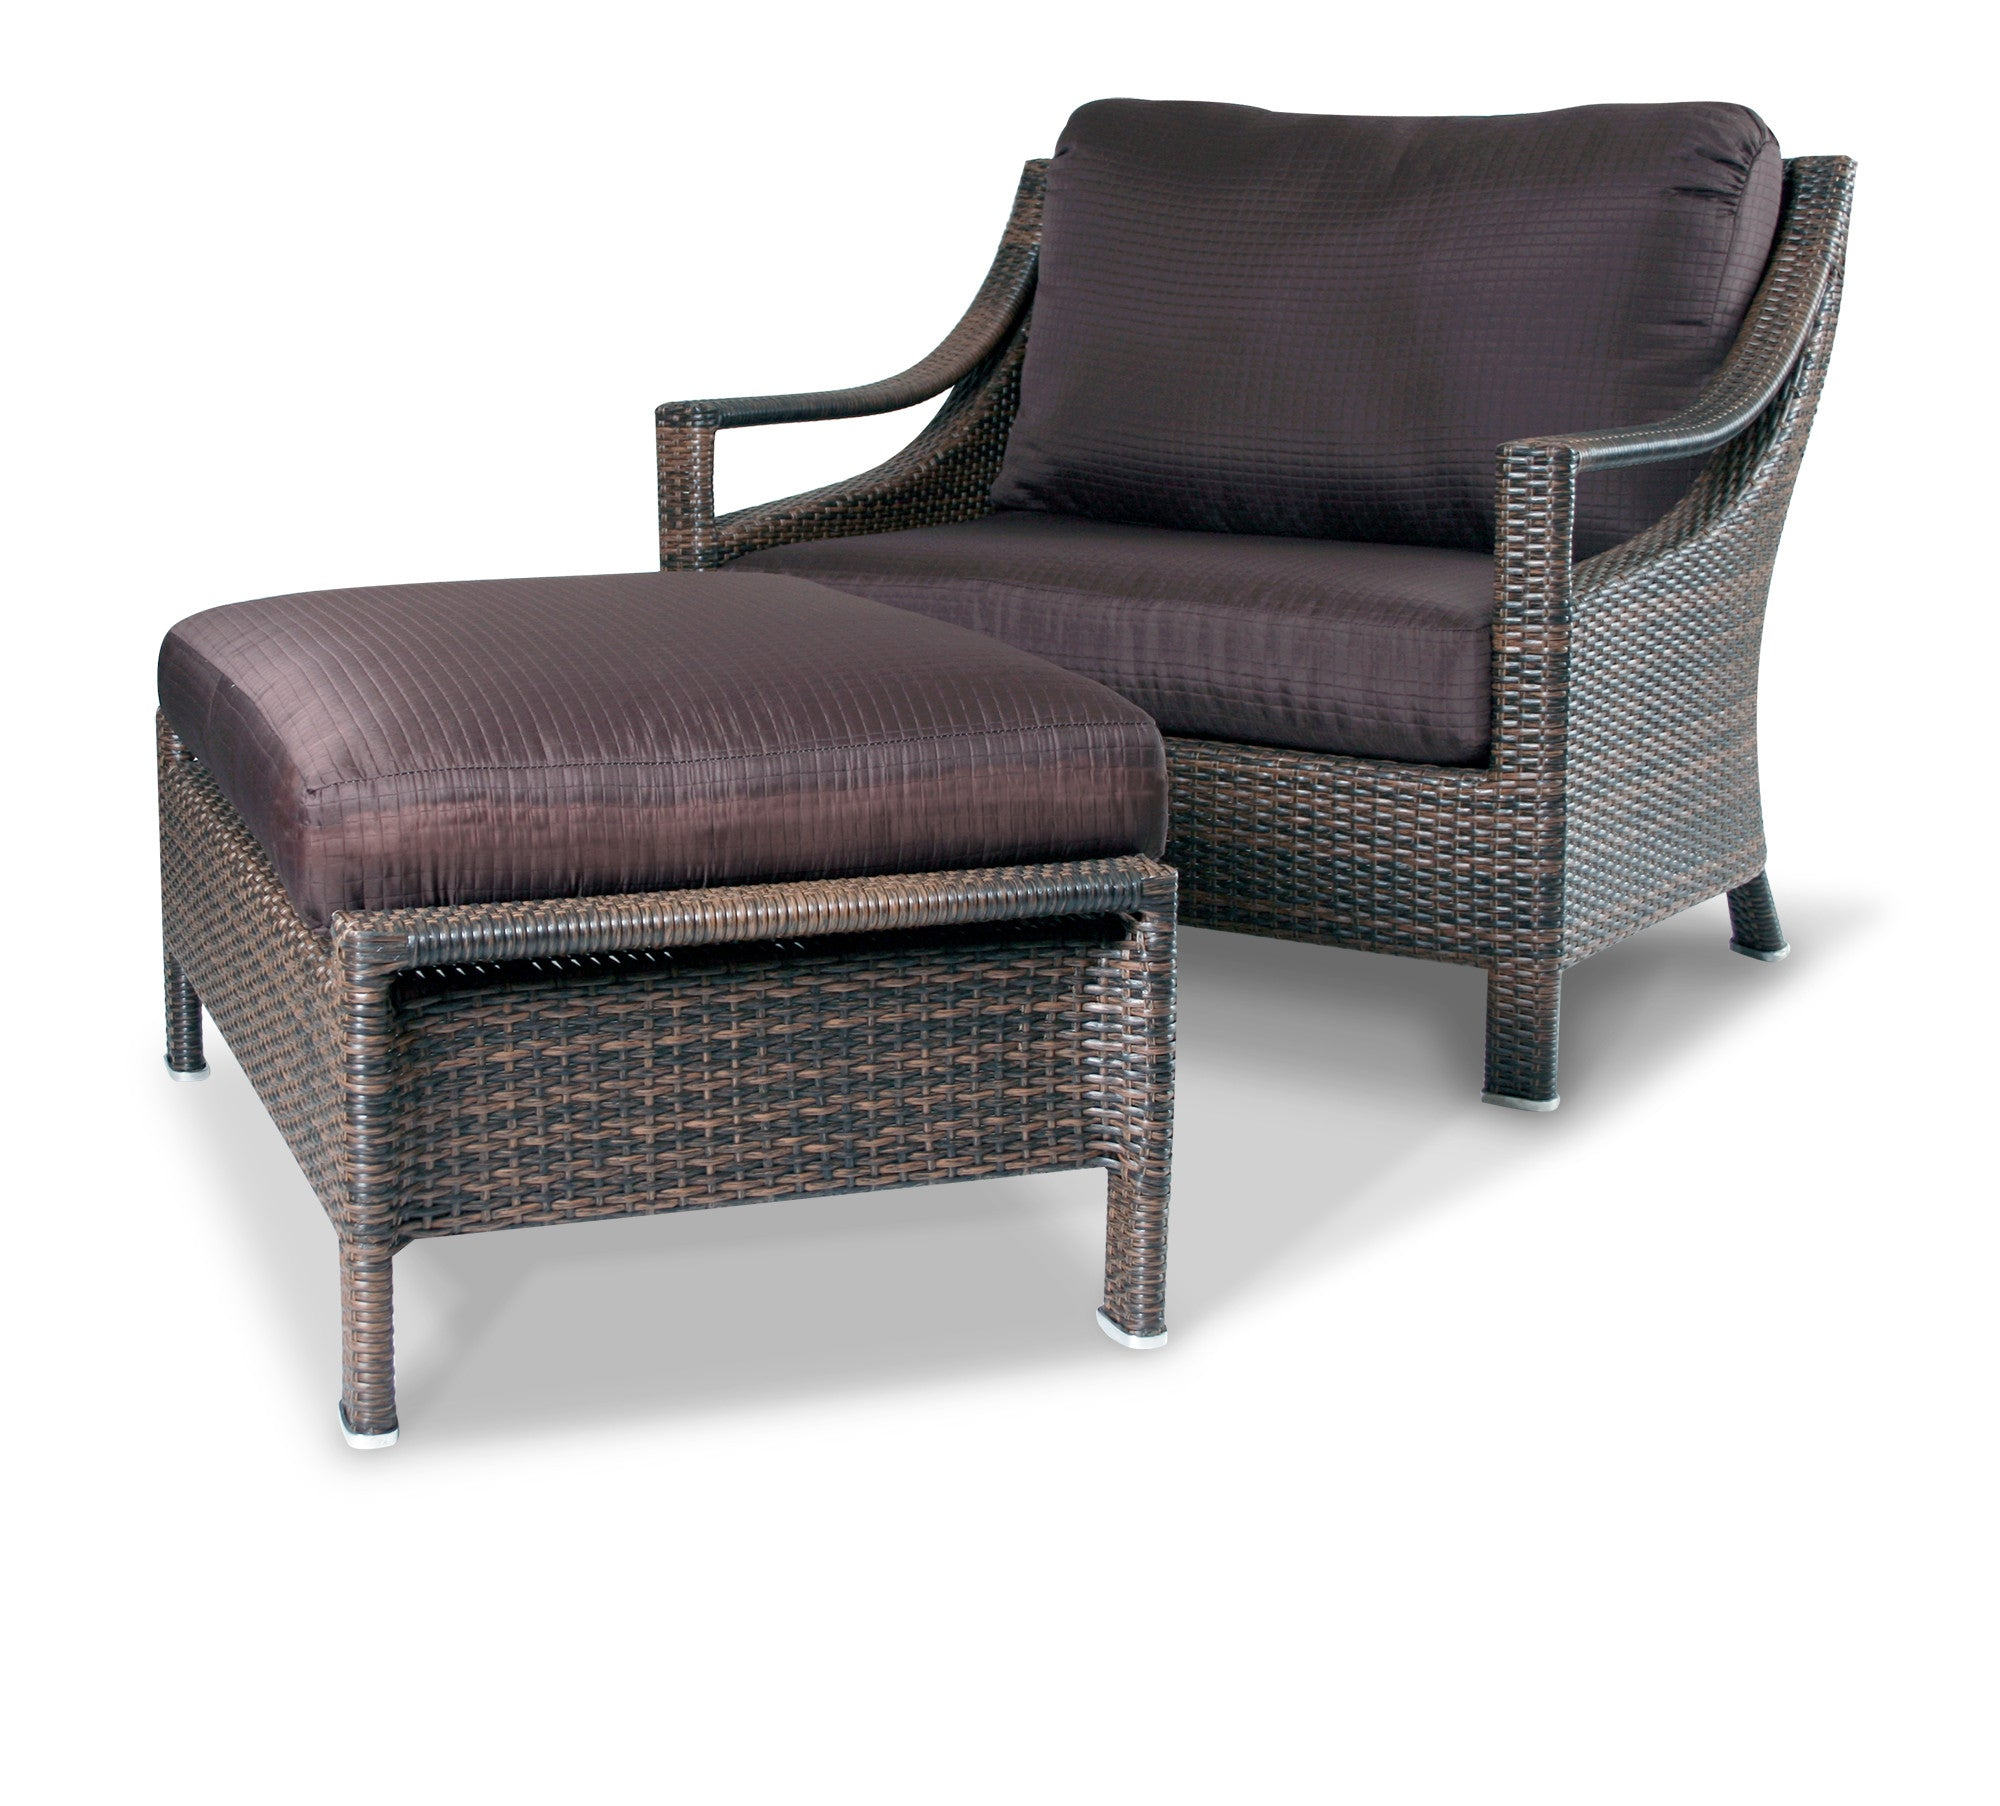 Mandalay Outdoor Chair and a Half Designer Wicker by Tribor